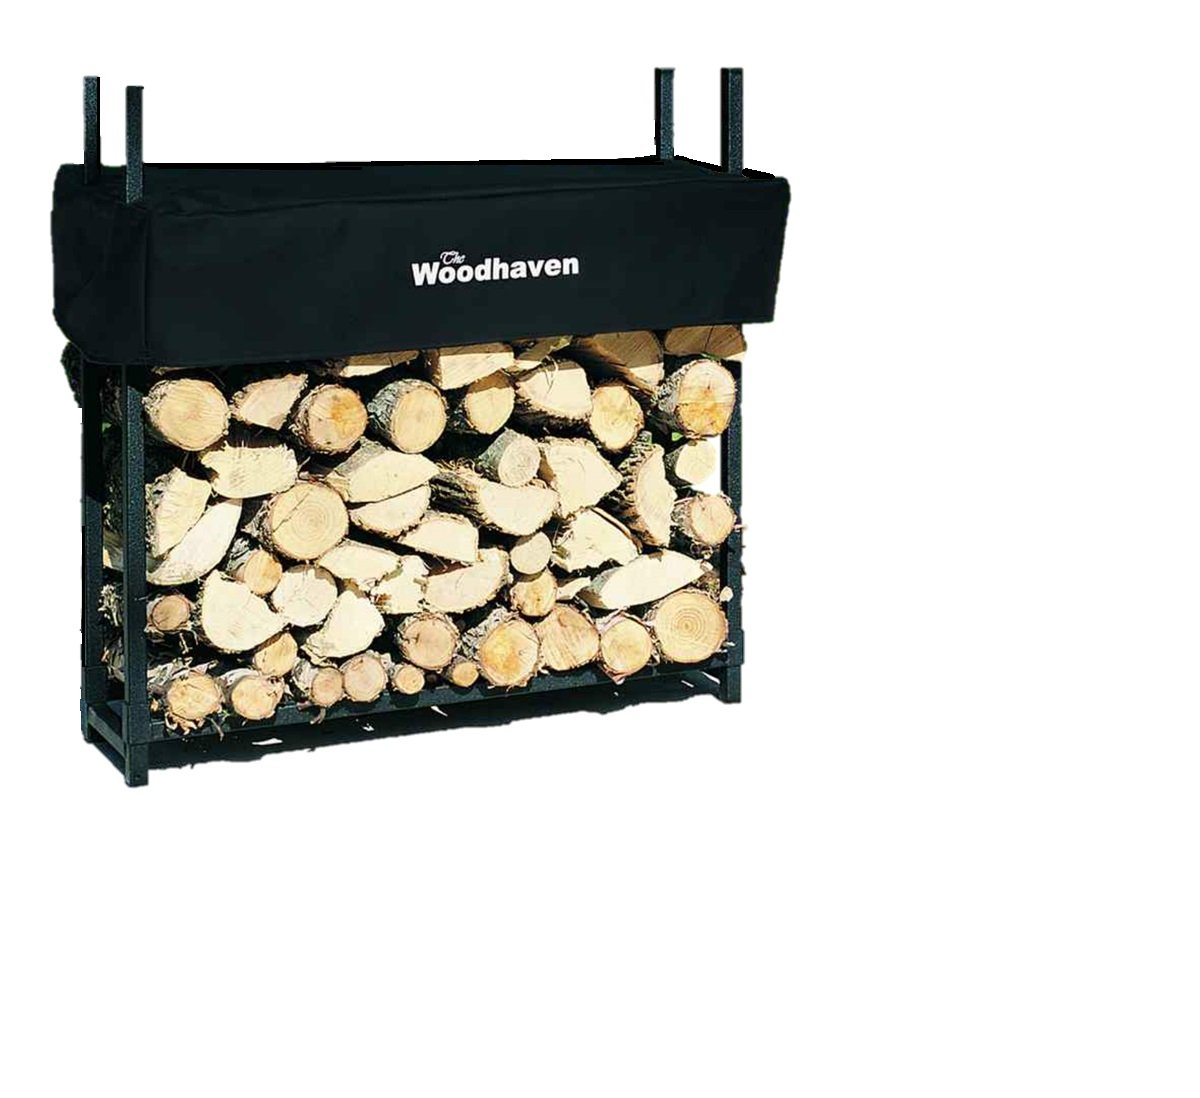 Woodhaven Firewood Shelter with Protective Canvas, 0.9 m Alexander Mfg. Co. Inc. WR003UK